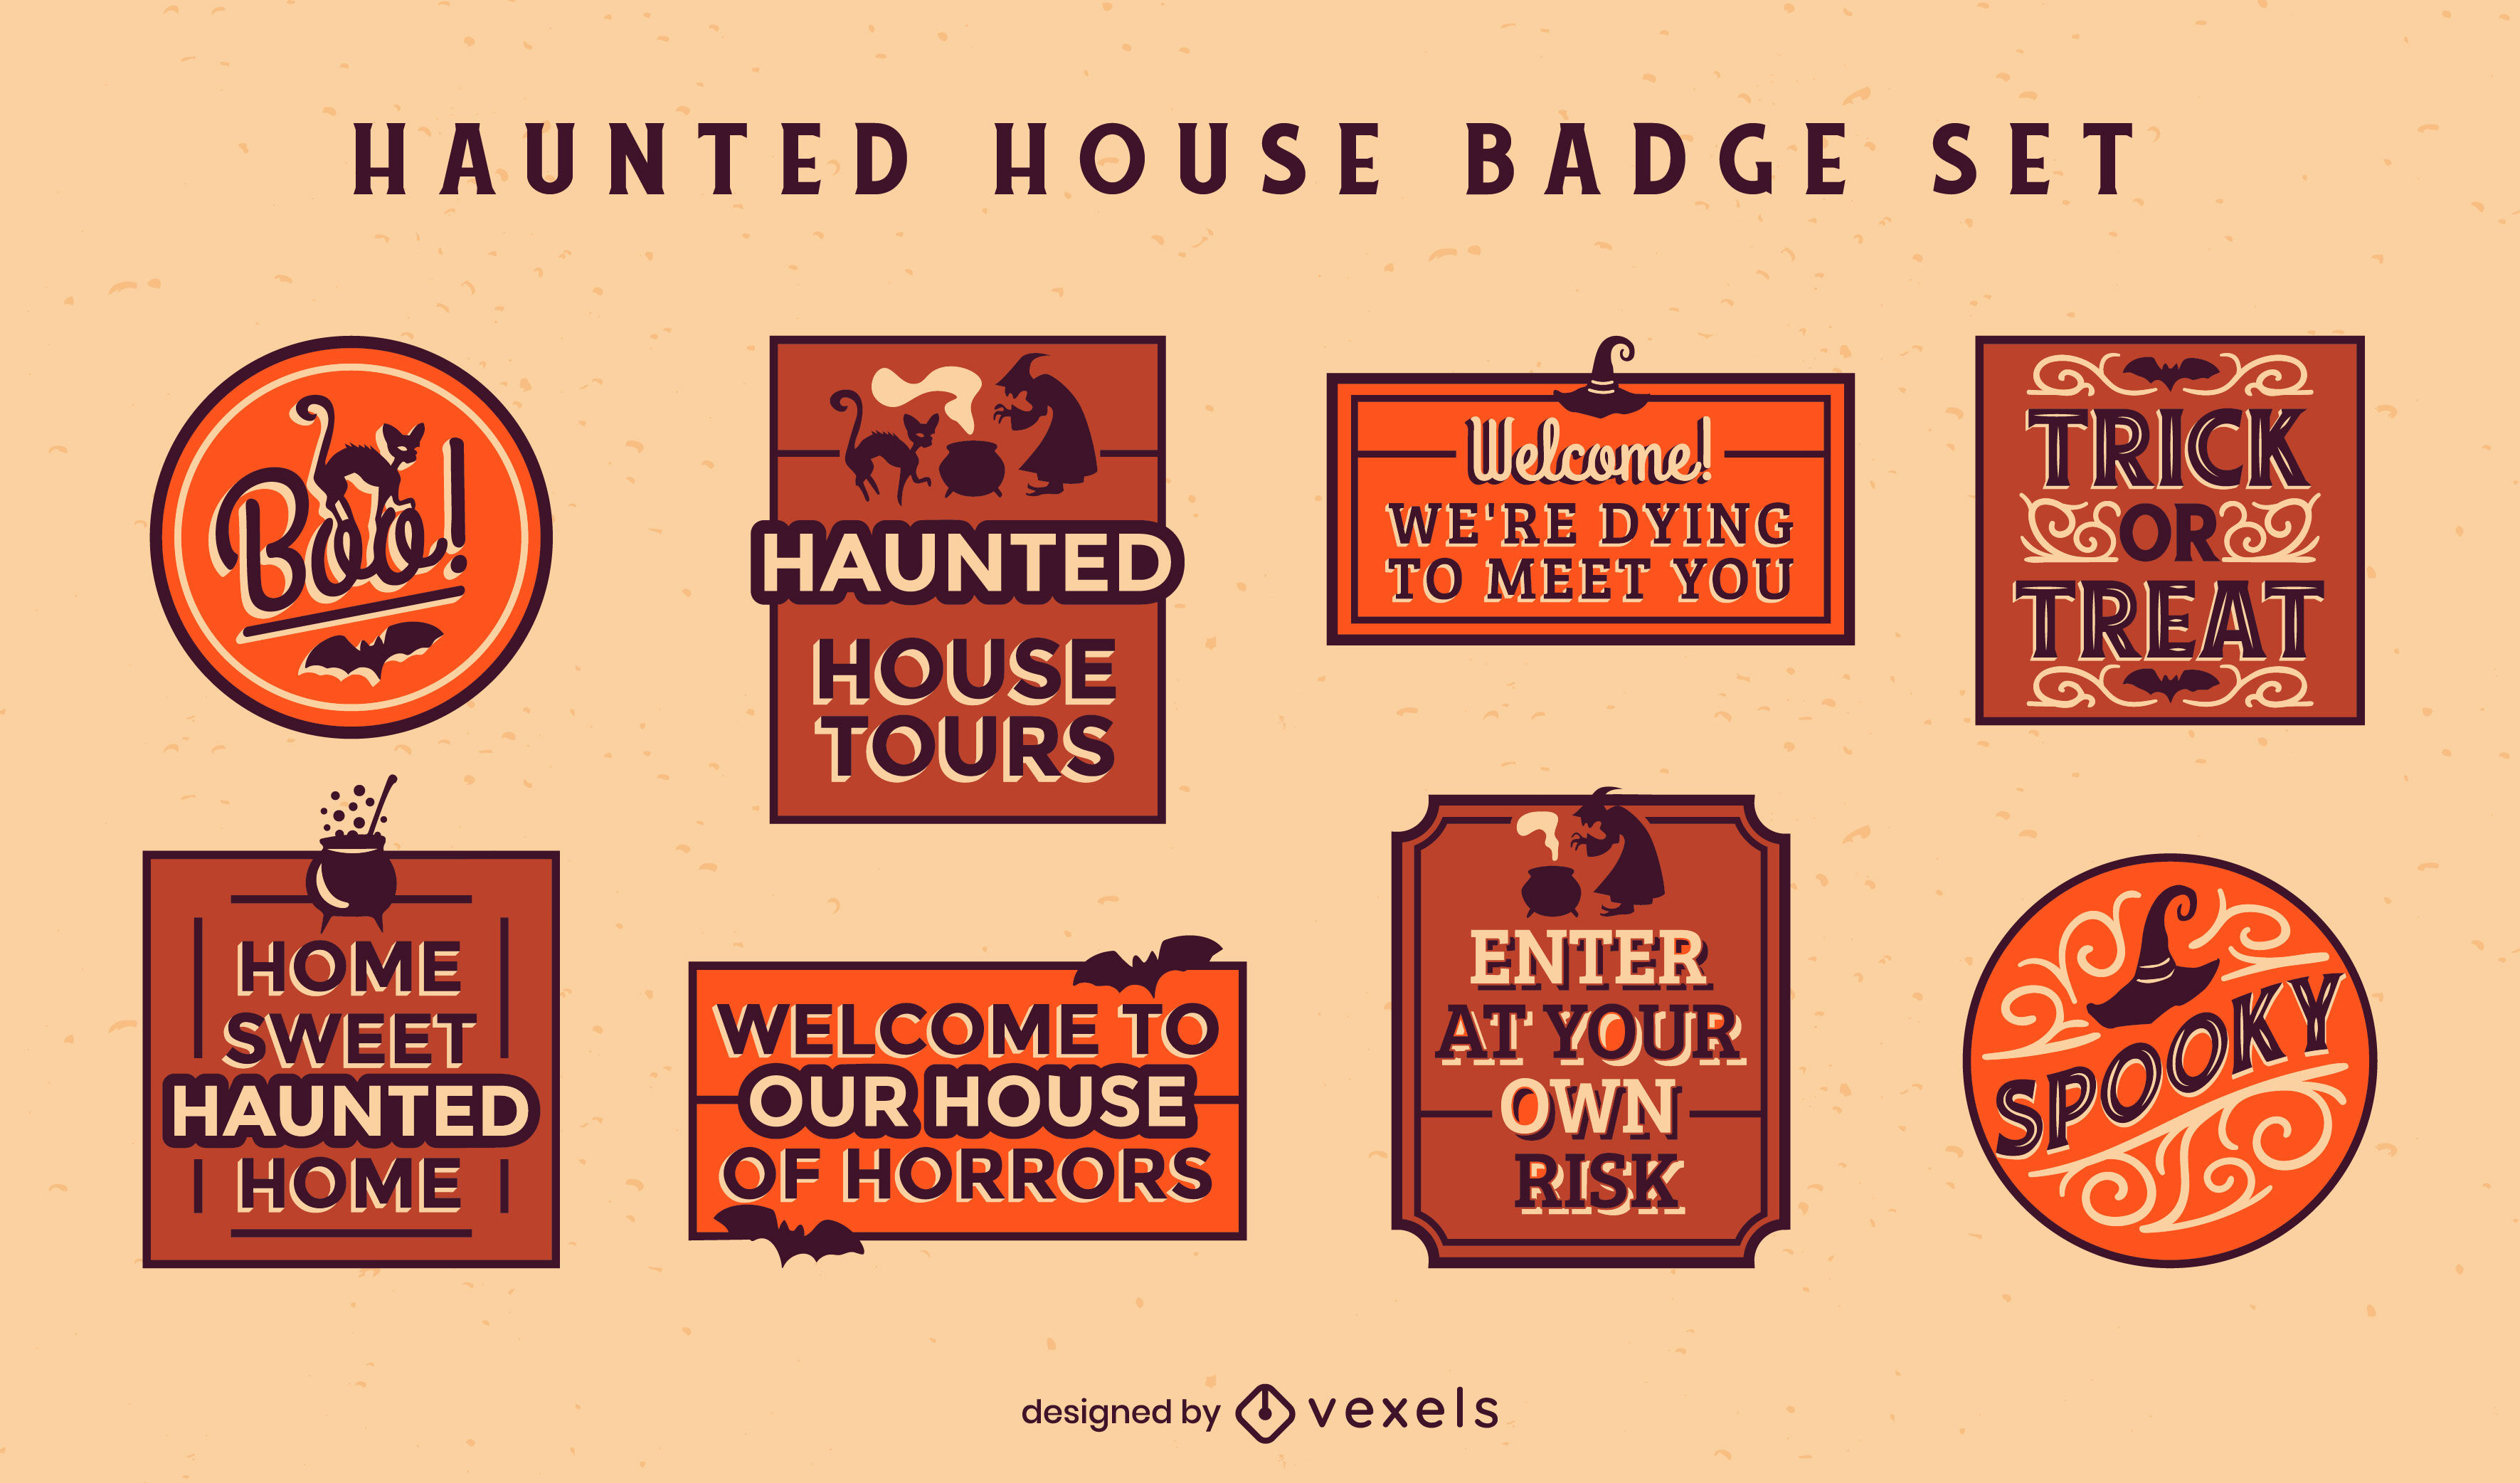 Haunted house quotes badge set